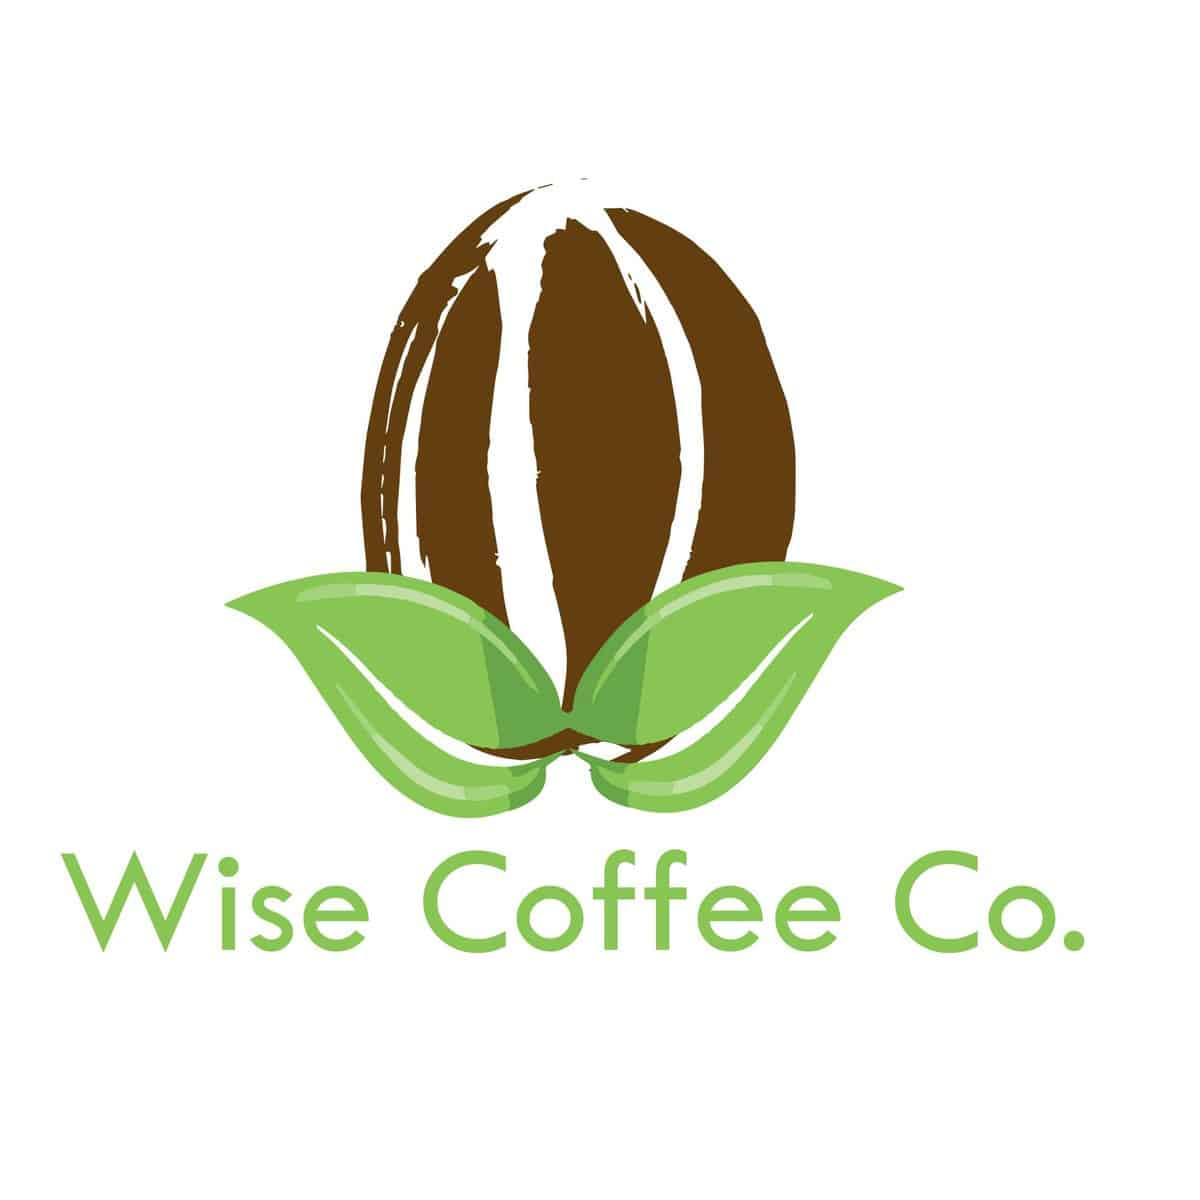 Wise Coffee Company